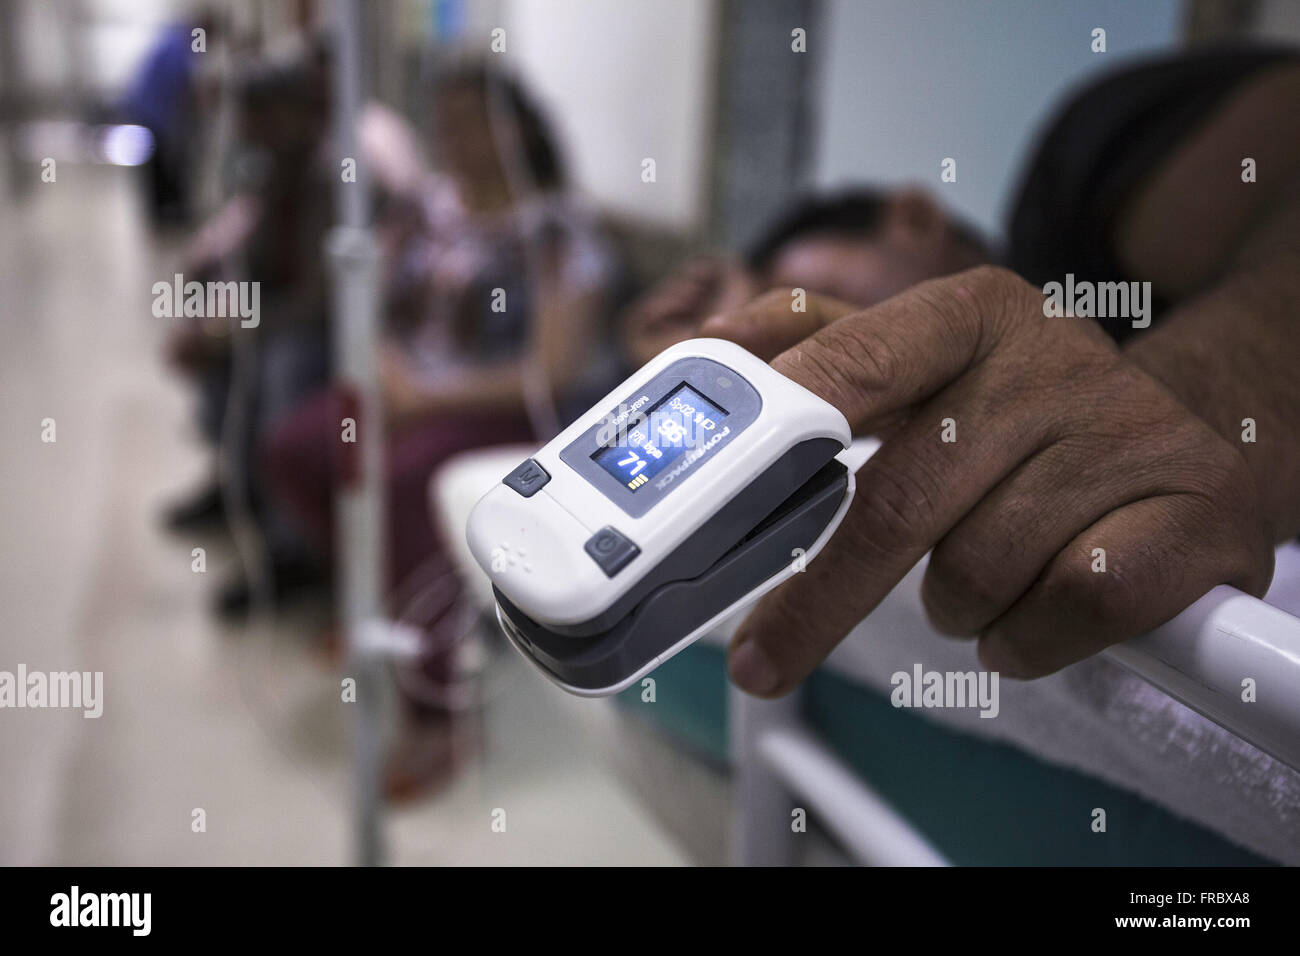 Pulse oximetry in a patient in the hallway of the emergency room at university public hospital - Stock Image